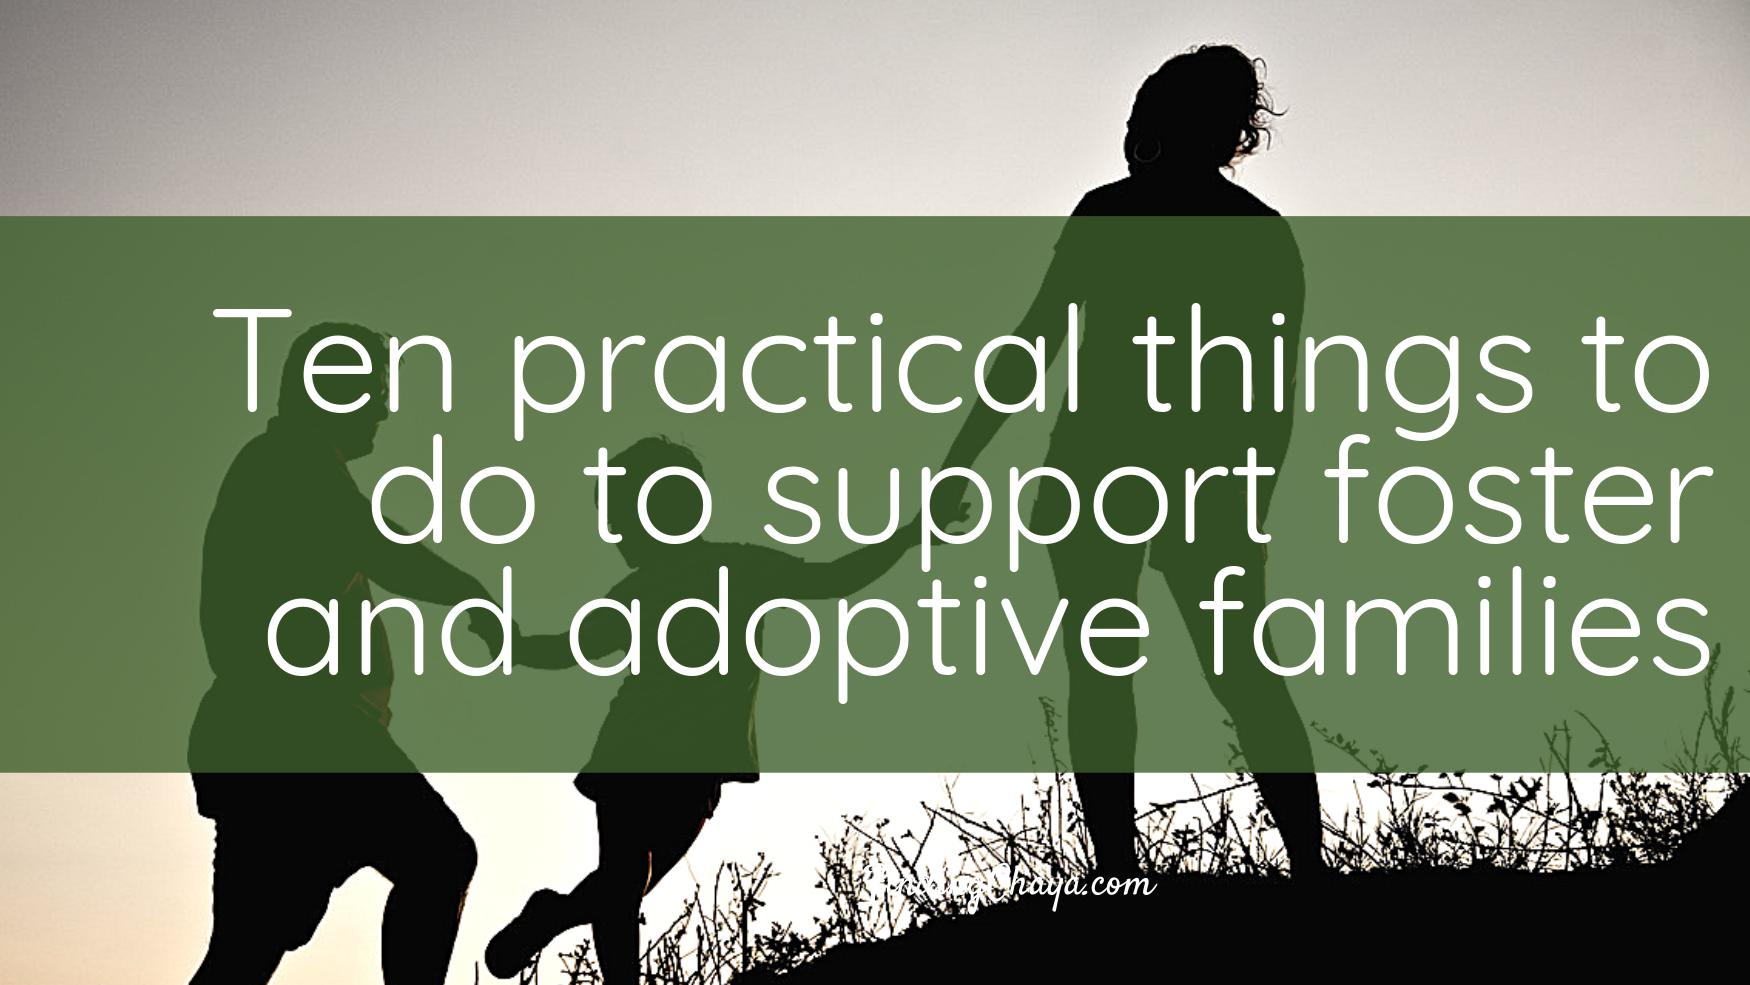 Ten practical things your church can do to support foster and adoptive families